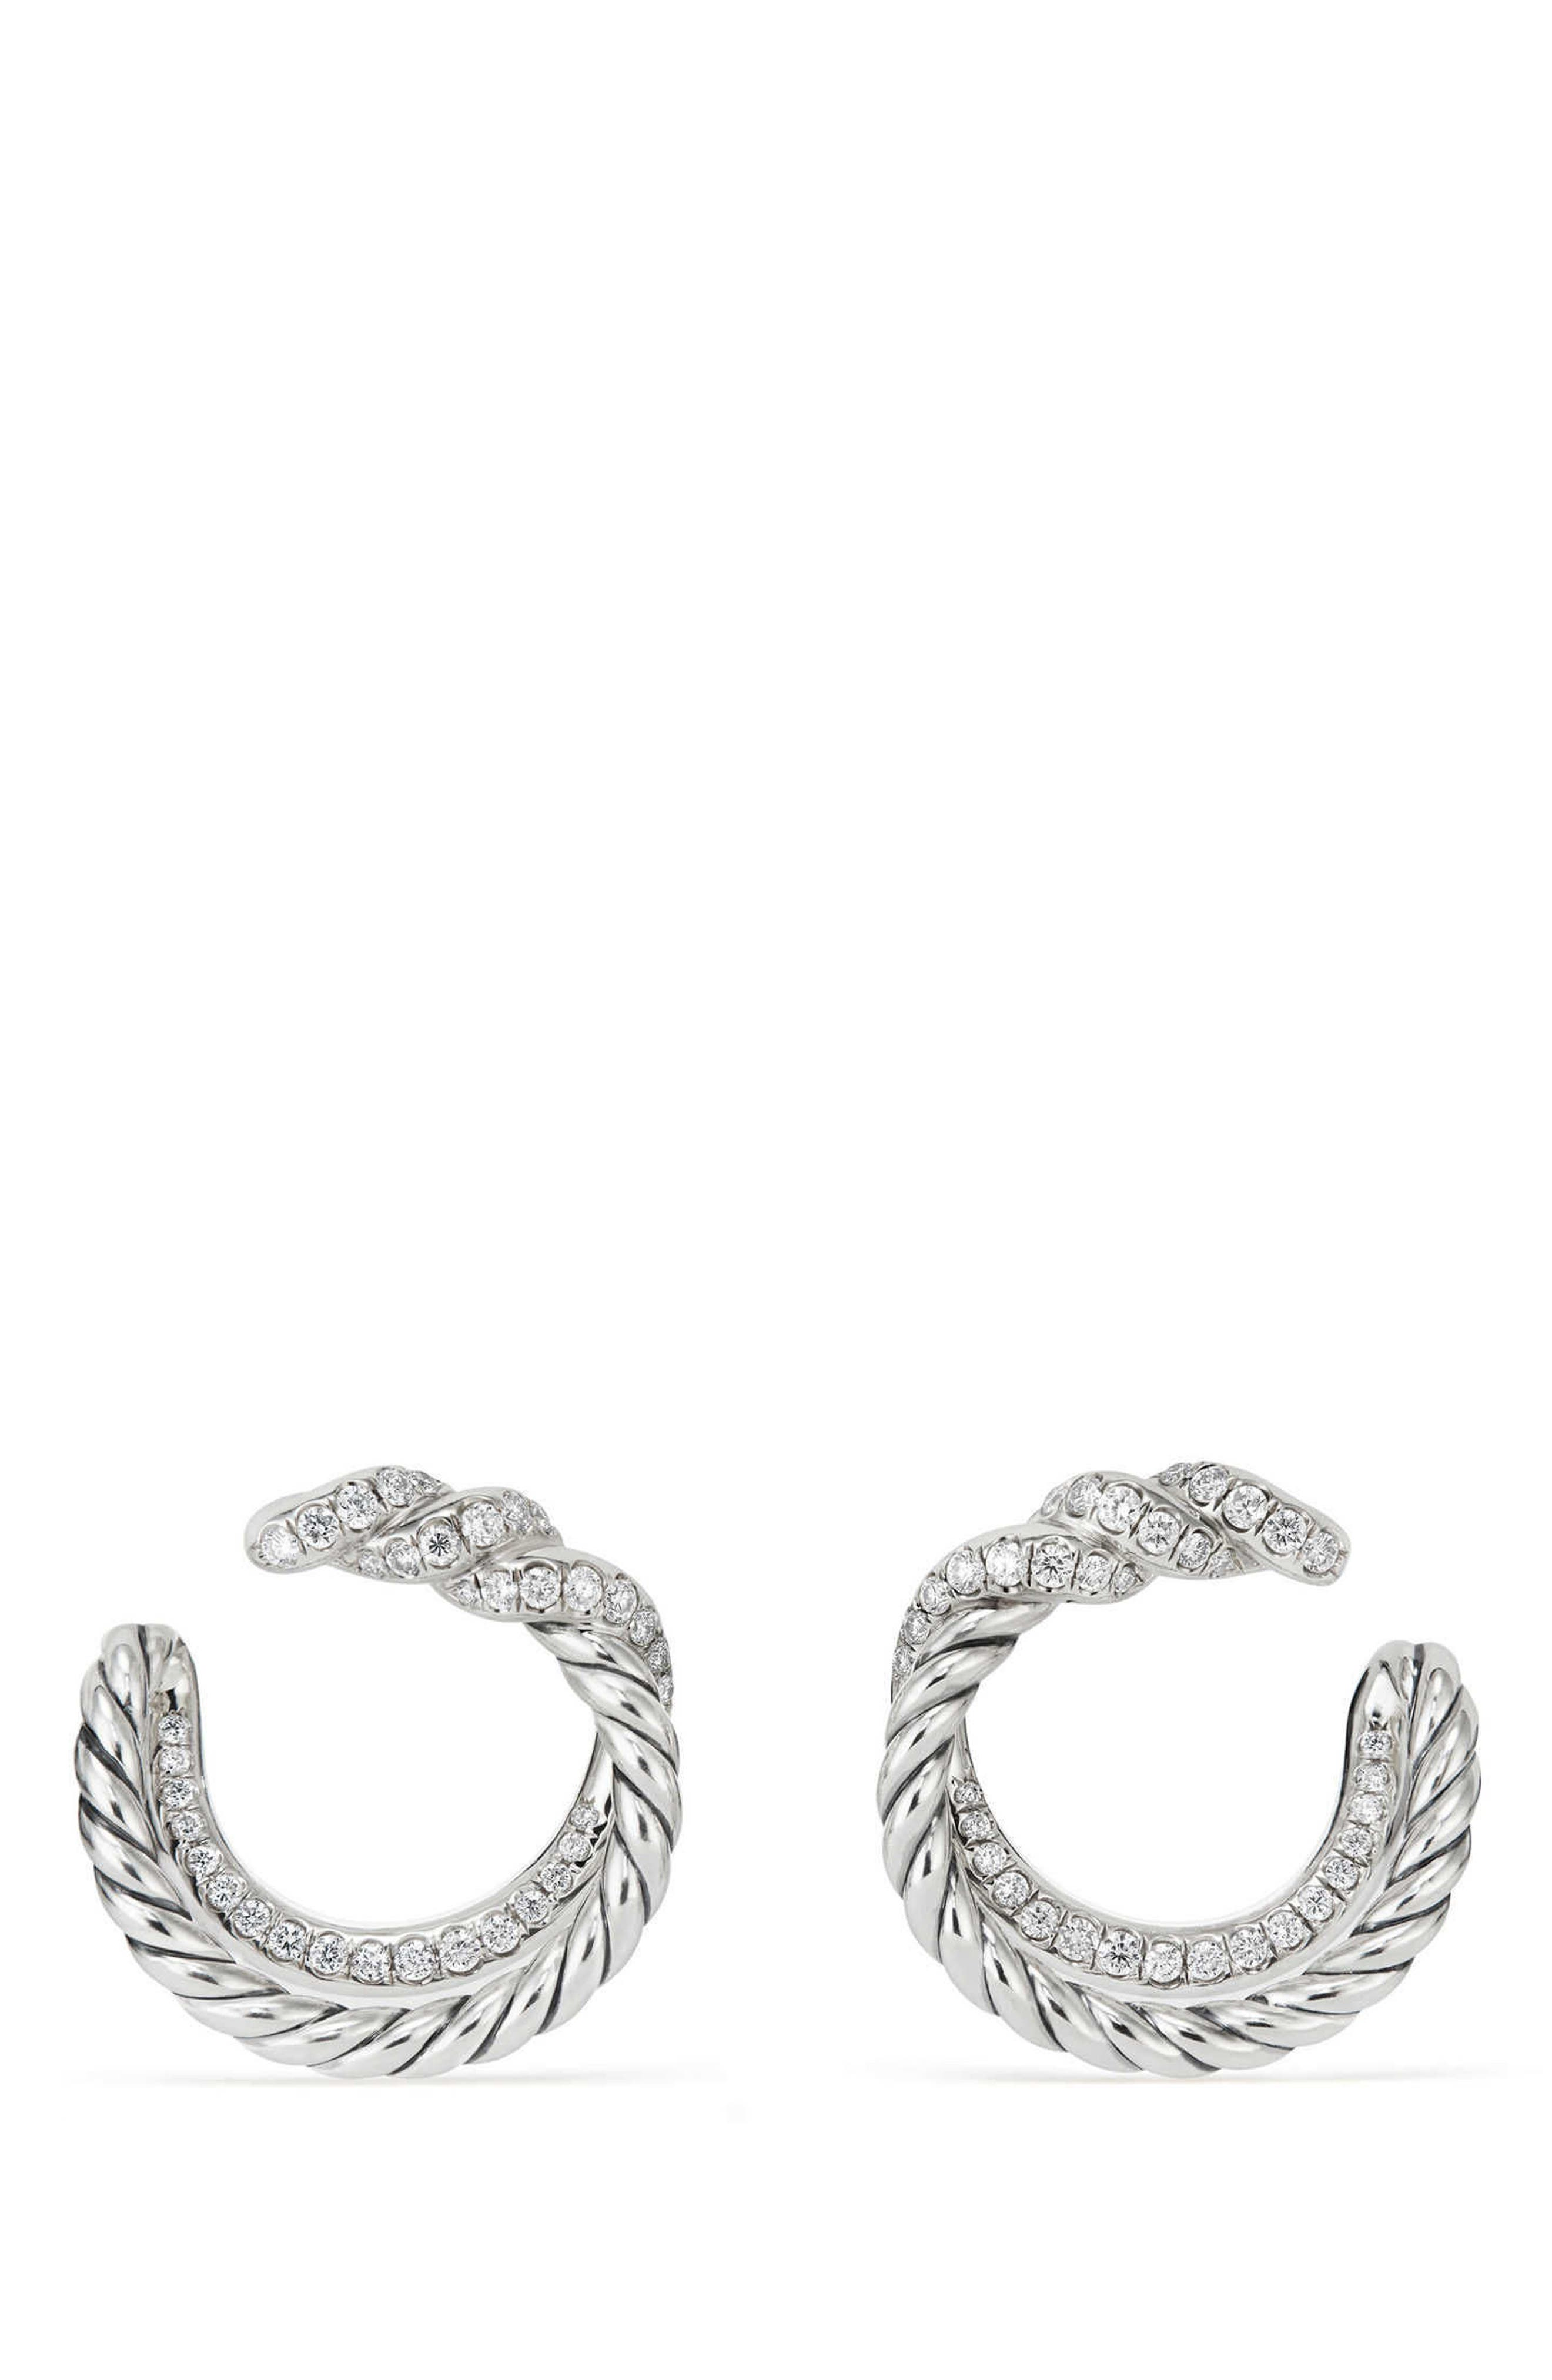 Continuance Hoop Earrings with Diamonds,                         Main,                         color, SILVER/ DIAMOND